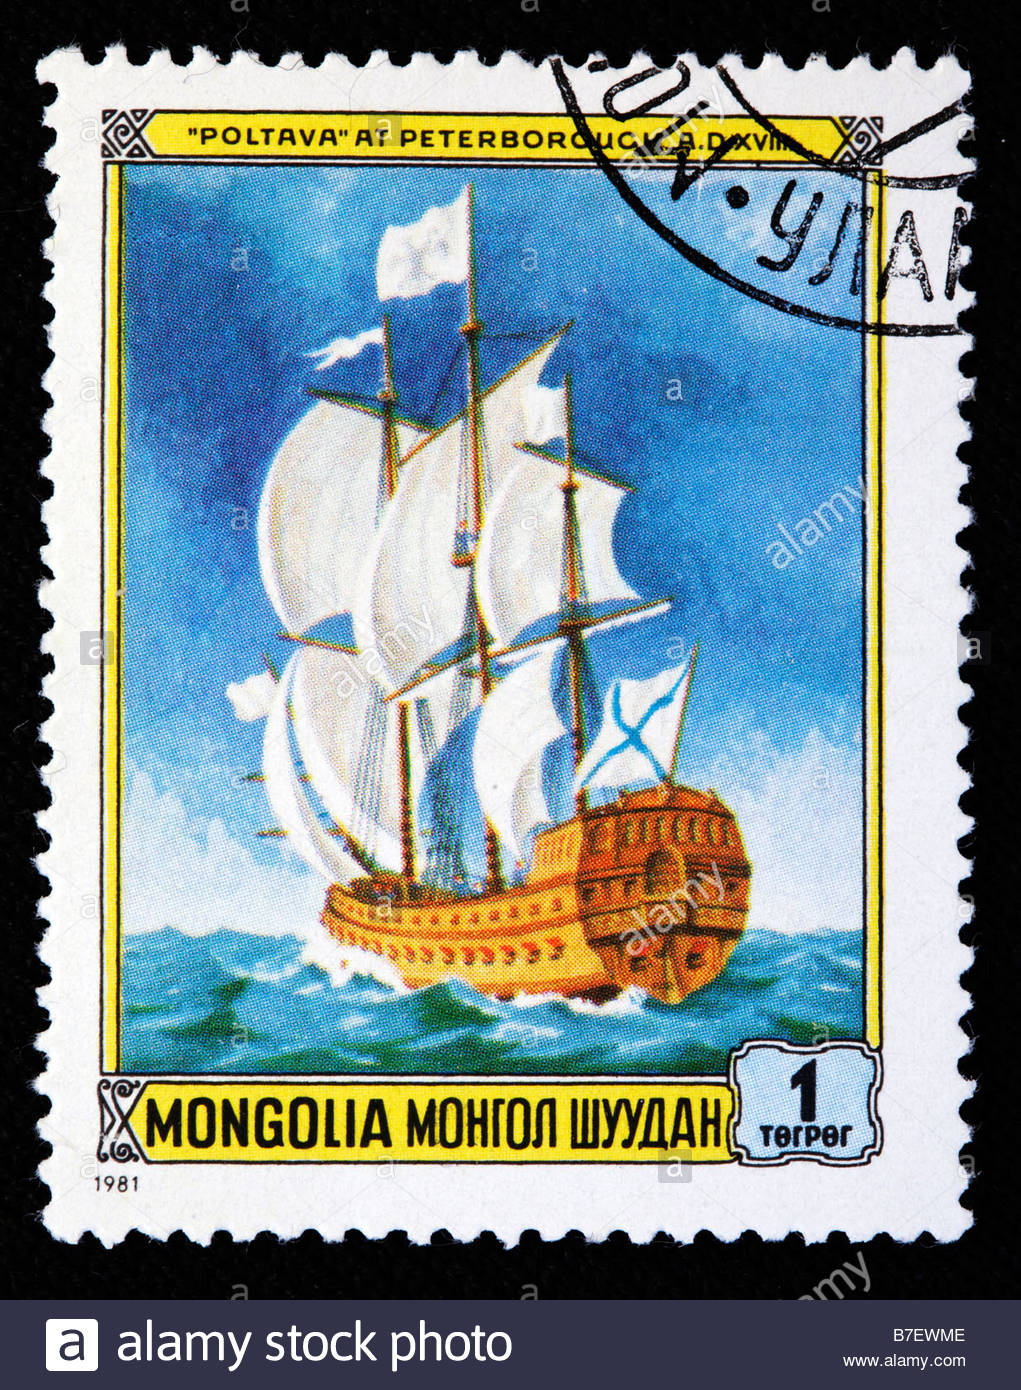 Russian sail ship 'Poltava' (18th century), postage stamp, Mongolia, 1981 - Stock Image